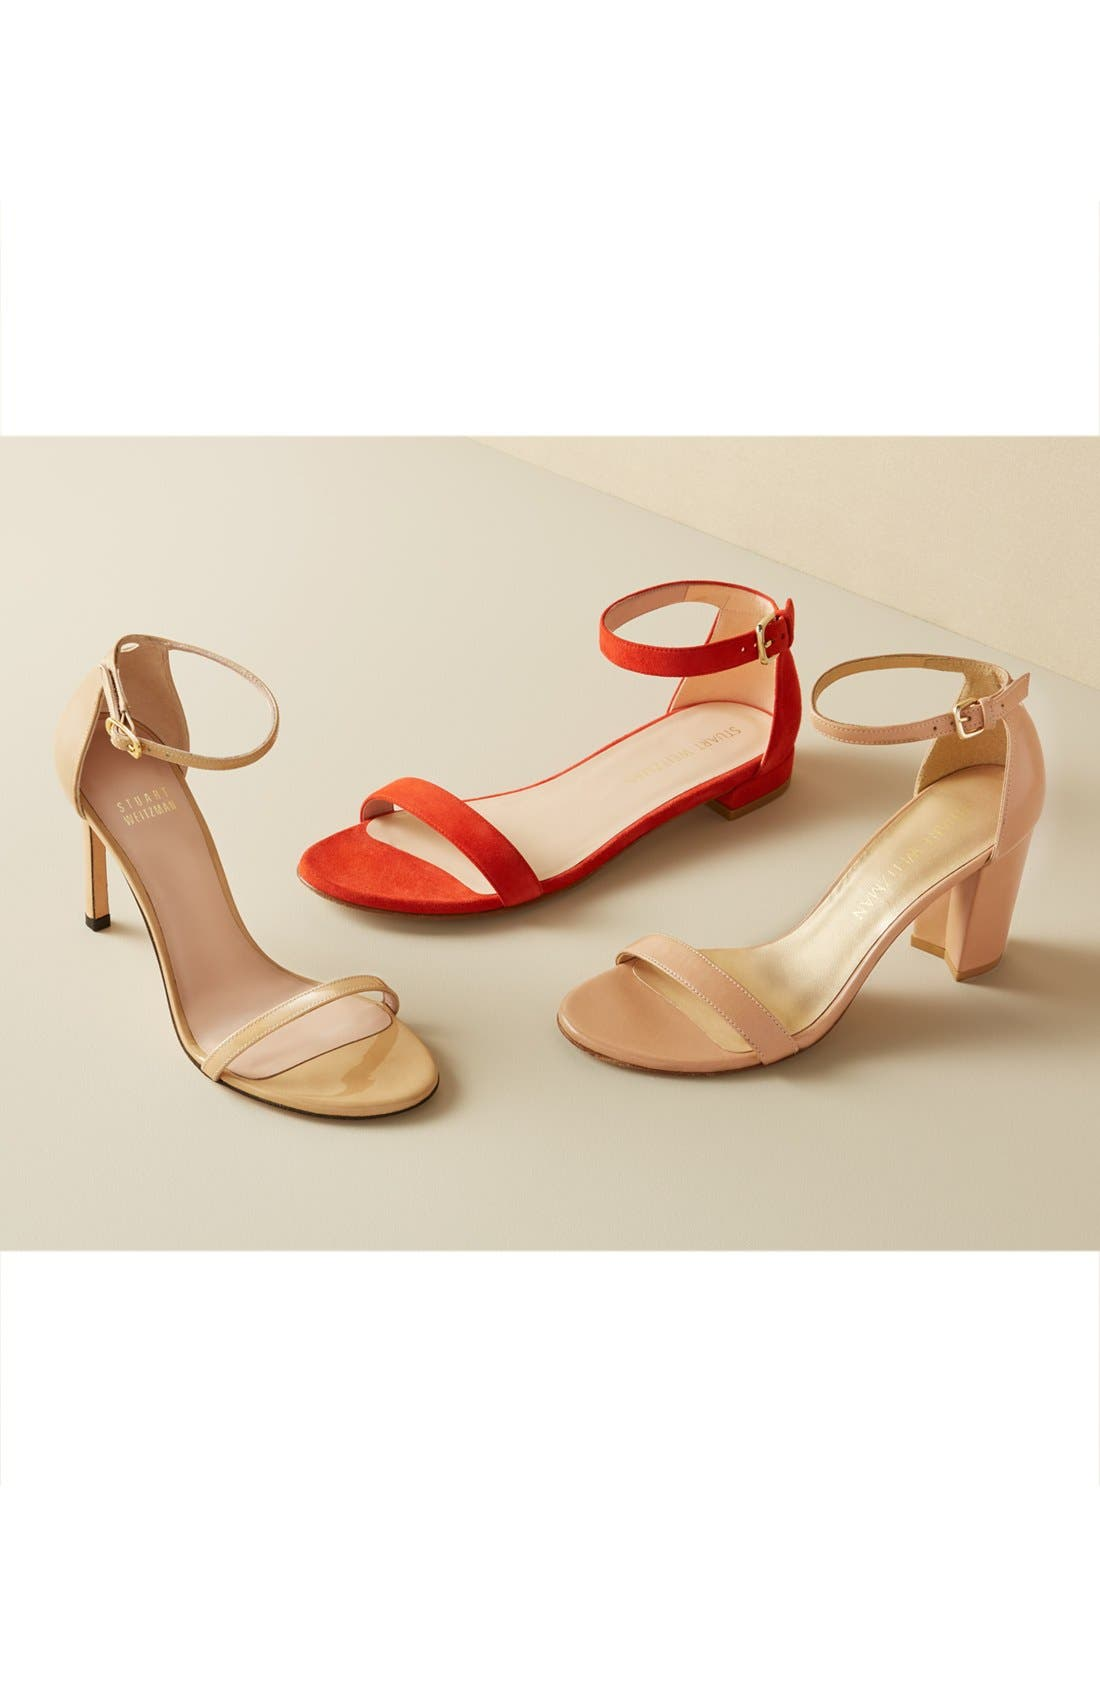 NearlyNude Ankle Strap Sandal,                             Alternate thumbnail 4, color,